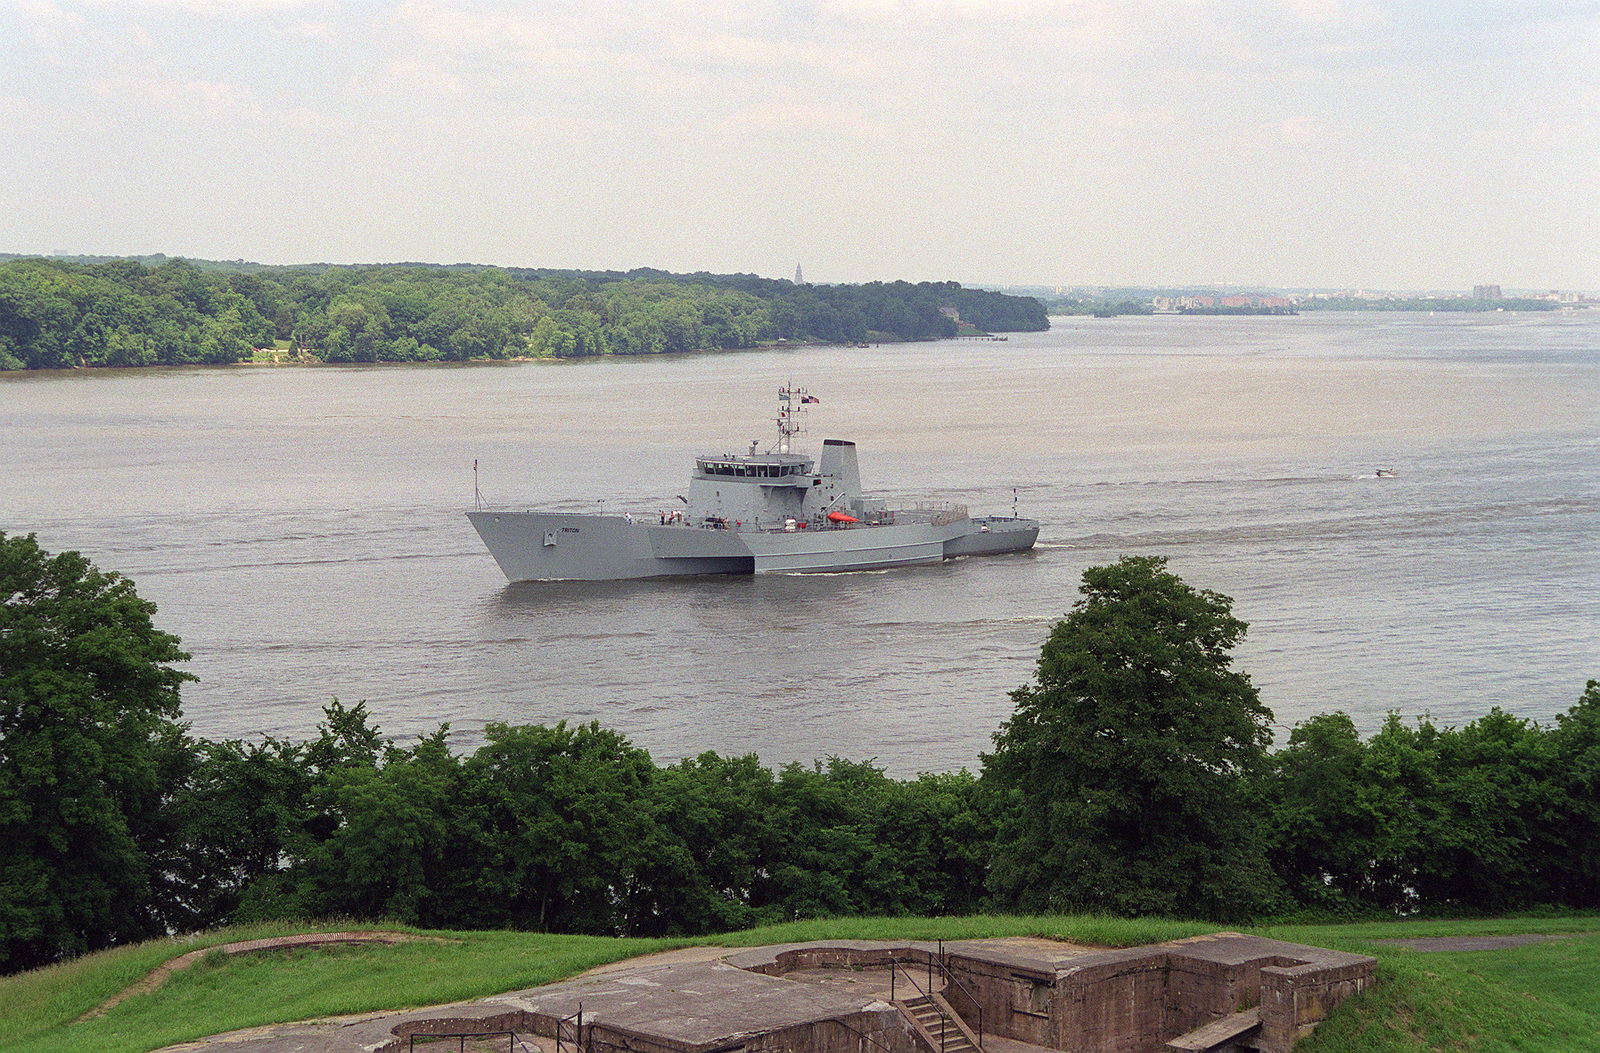 Port bow view of the United Kingdom research vessel RV TRITON passing under the ramparts of historic Fort Washington. The vessel is sailing down river after completing a port visit to the Washington District of Columbia area